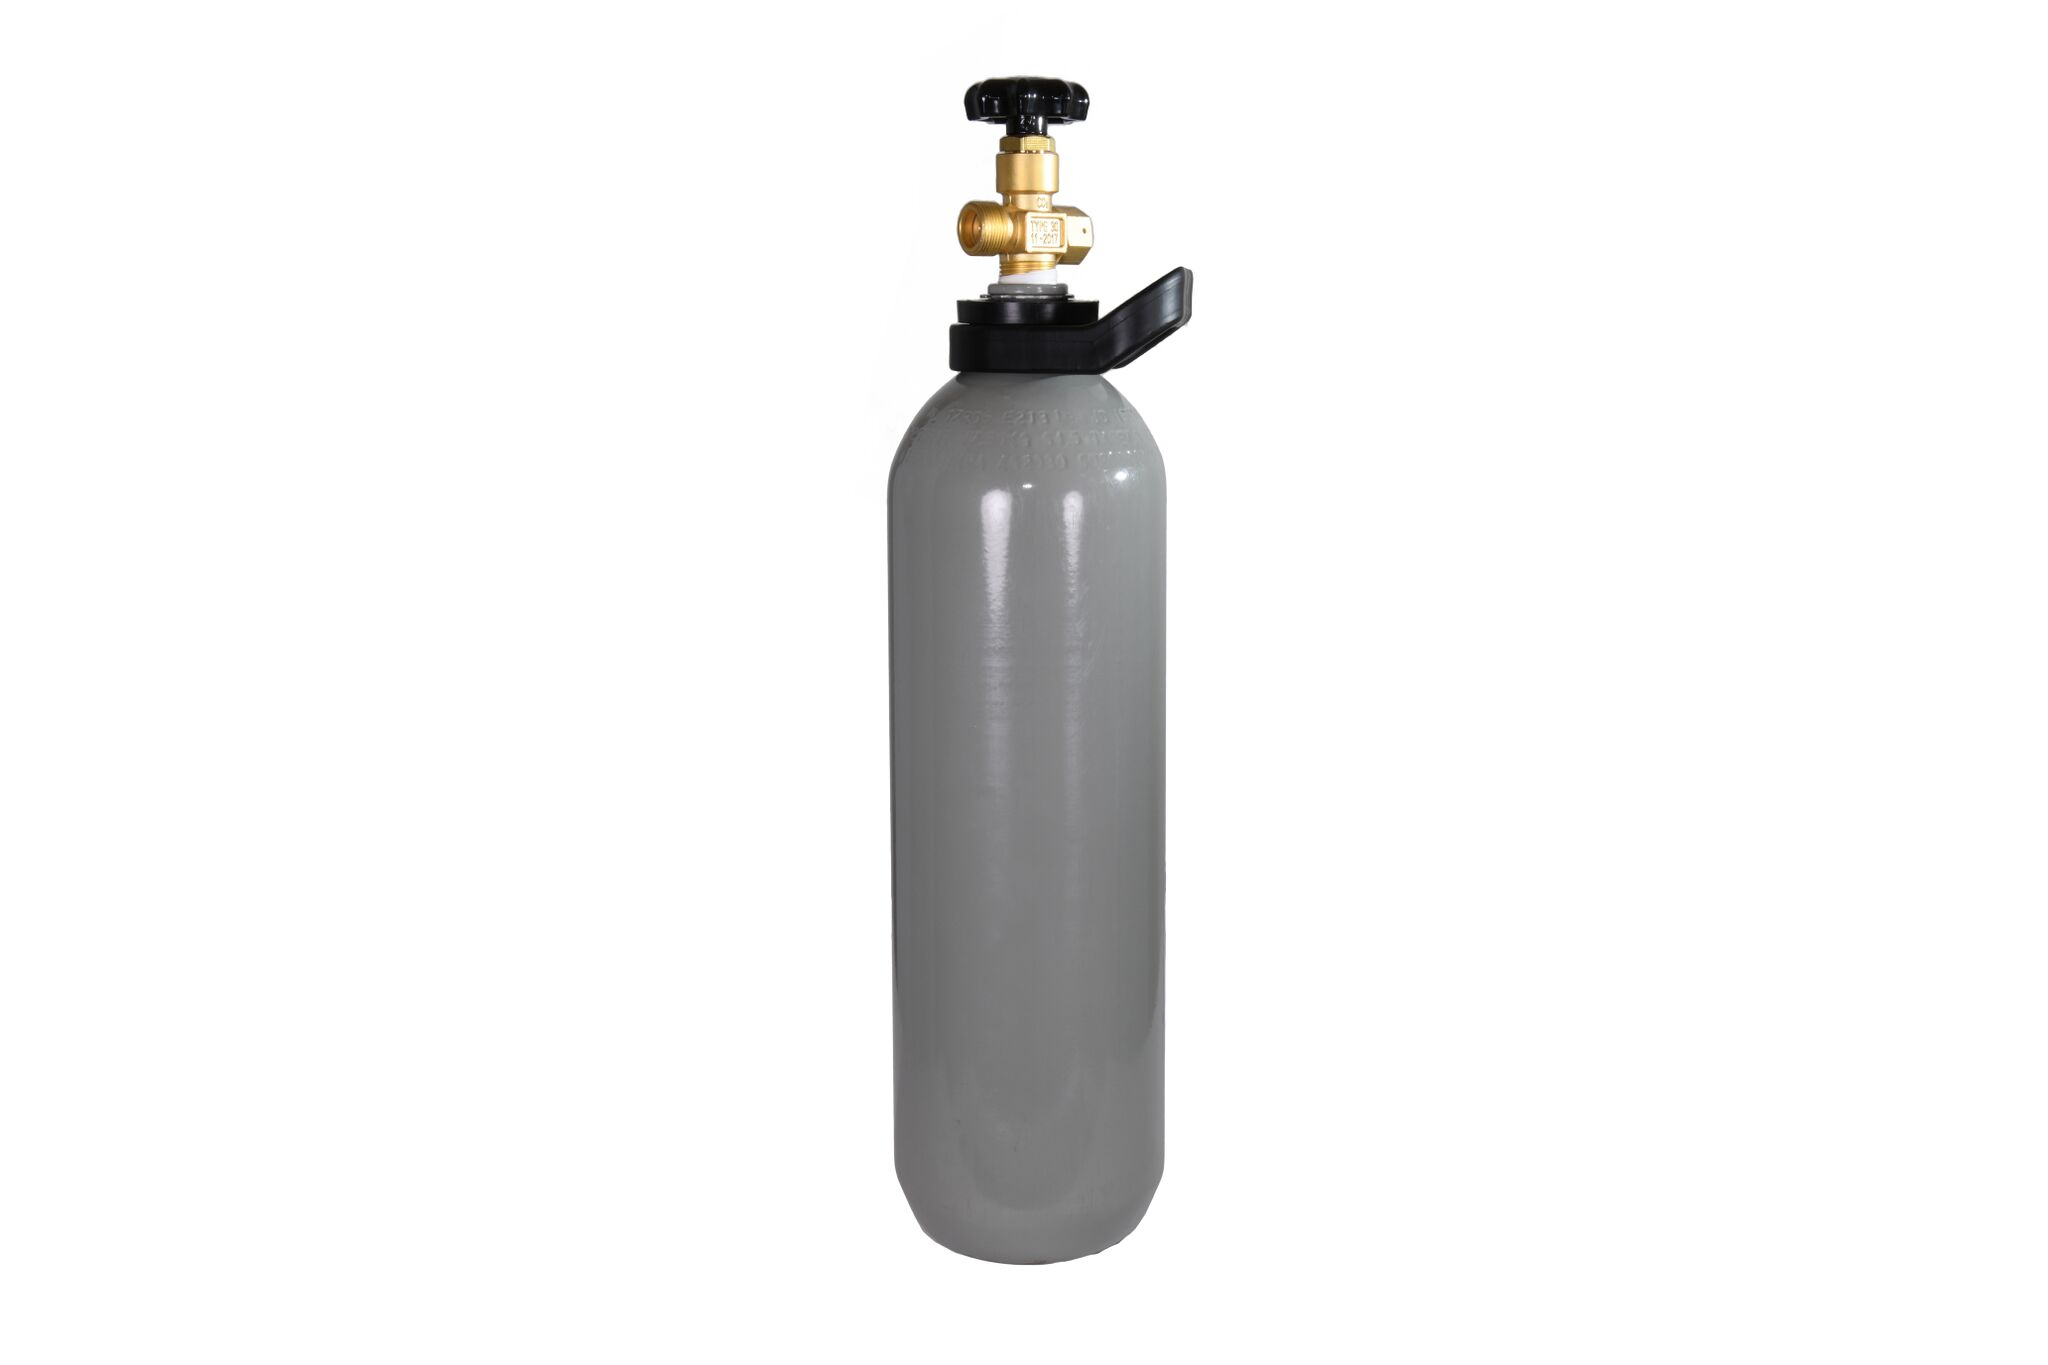 6kg Refillable C02 Cylinder (Full)